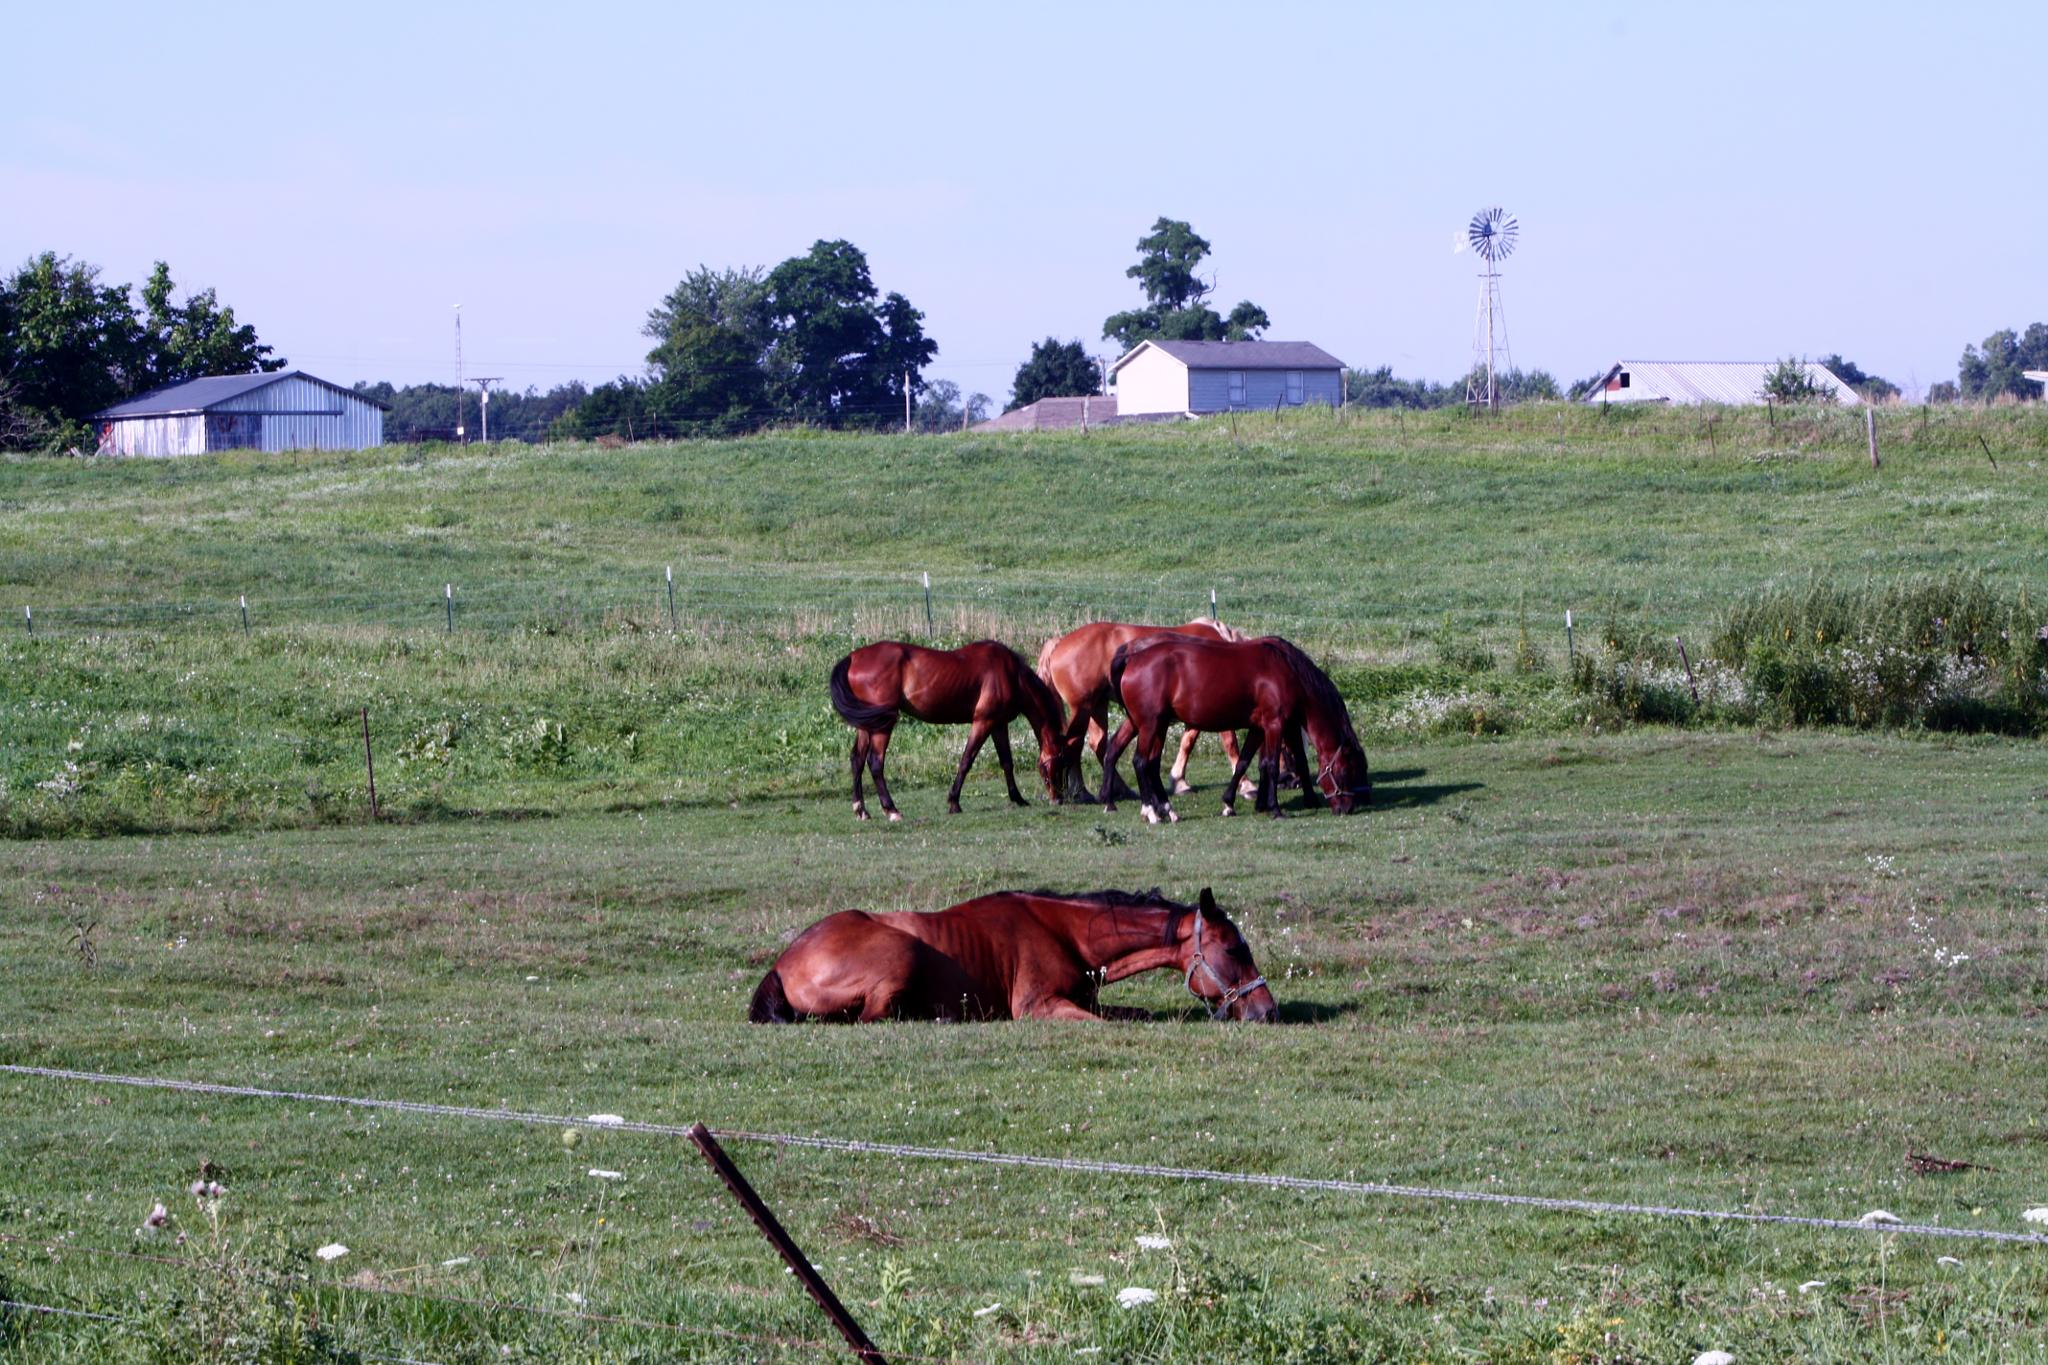 Horses by cindy.martin.7503